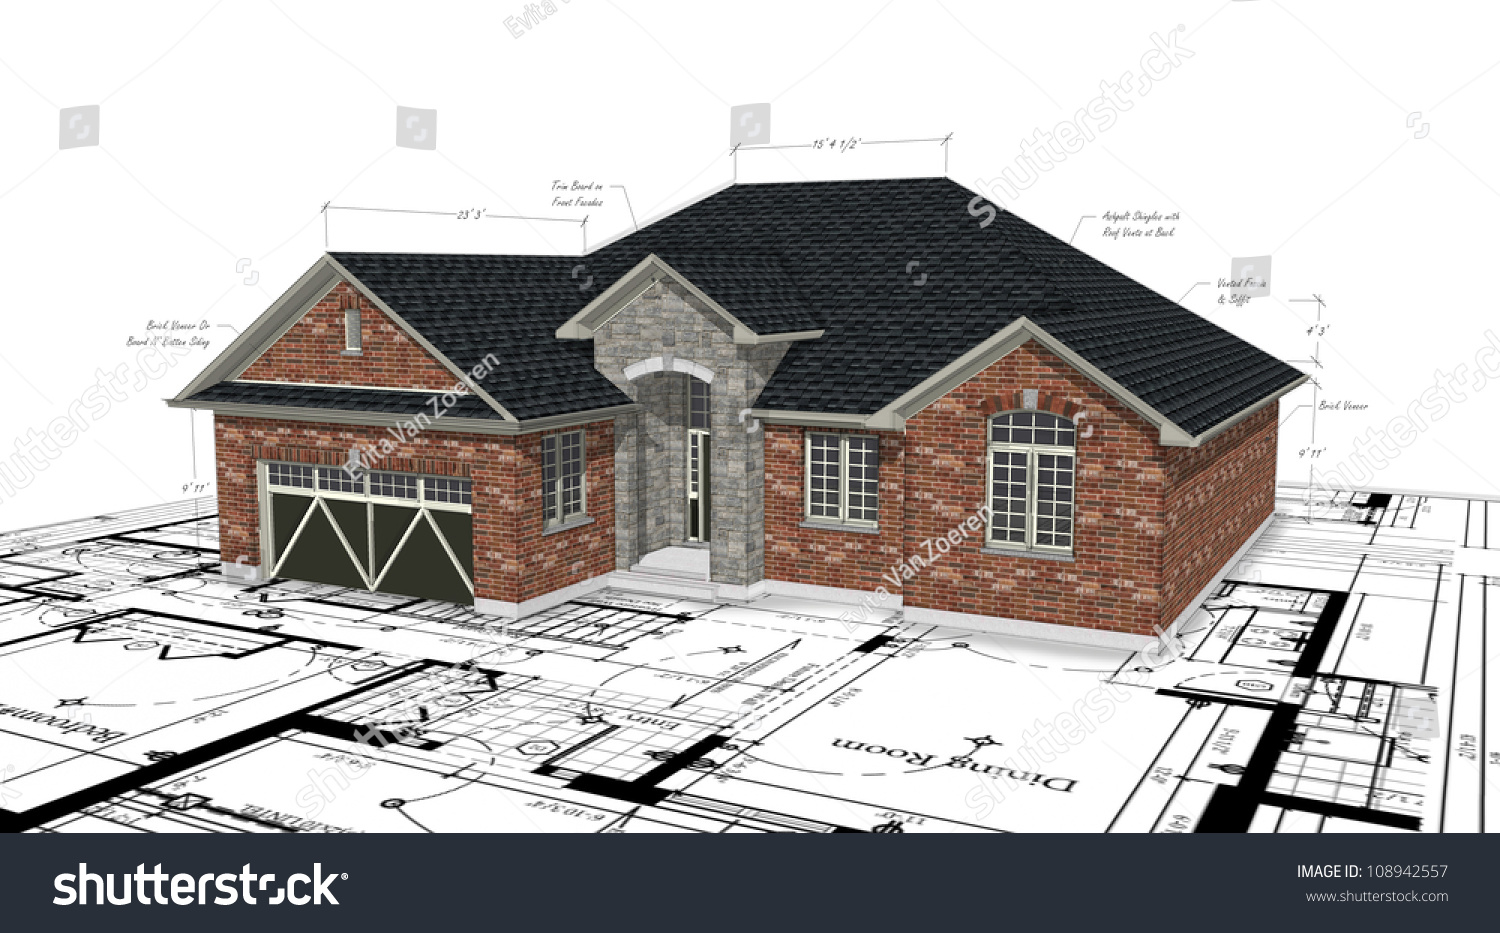 Red brick house plans stock illustration 108942557 for Brick house design blog